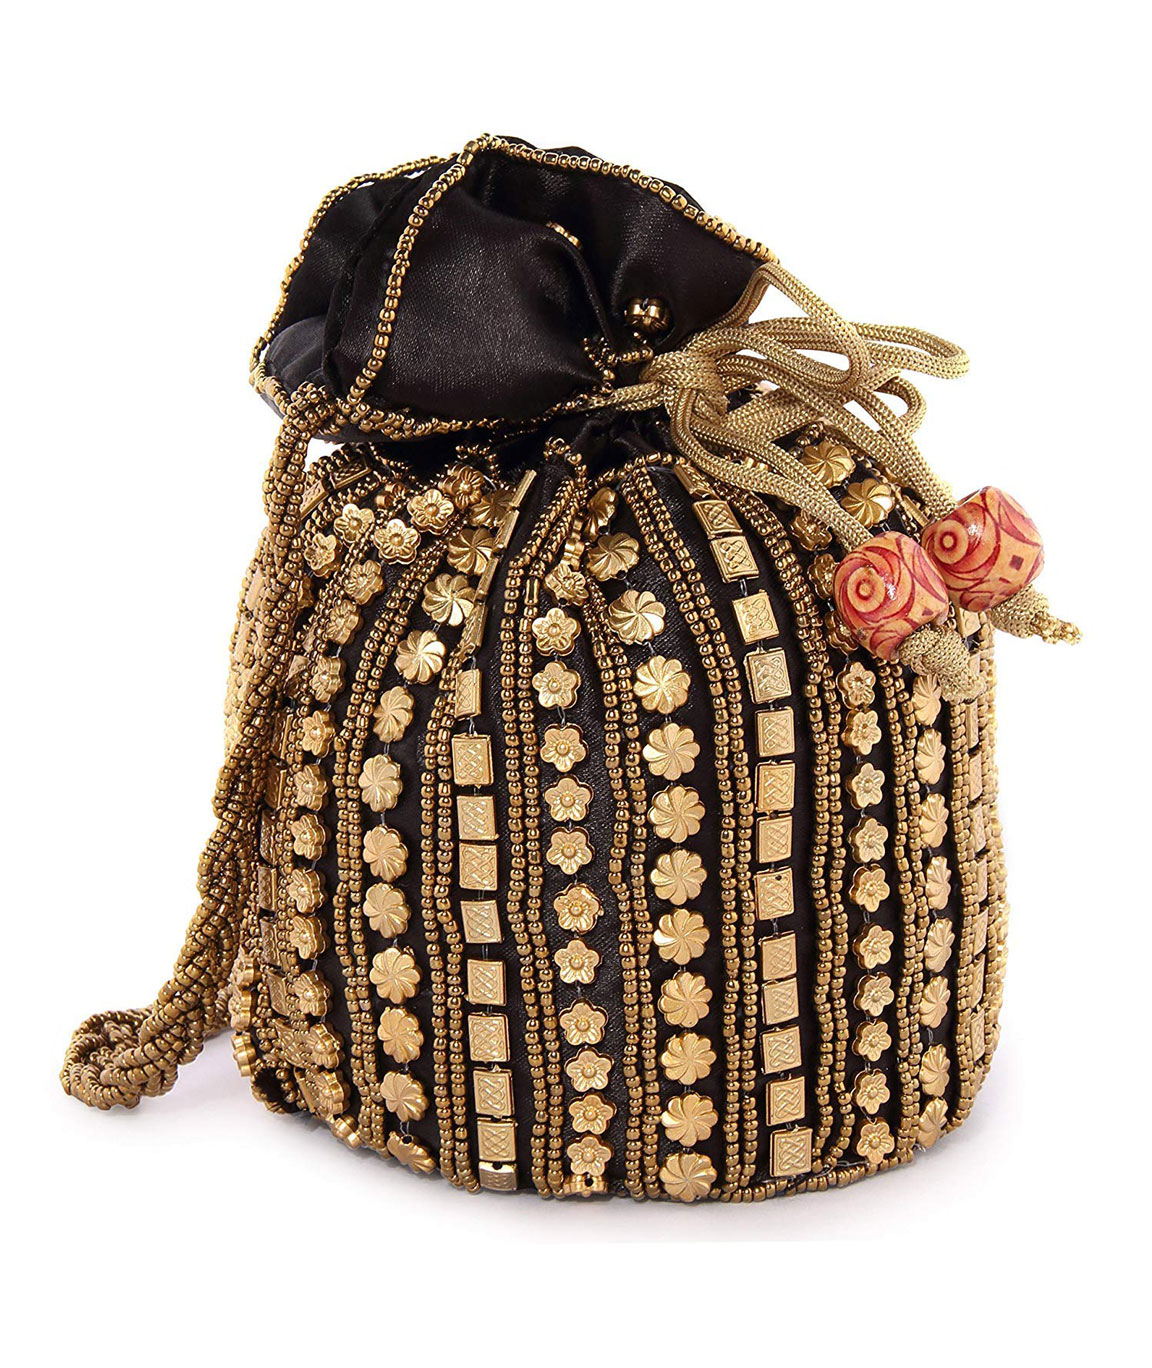 DN Enterprises Party Wear Potli Bag Bridal Potli For Women(black)